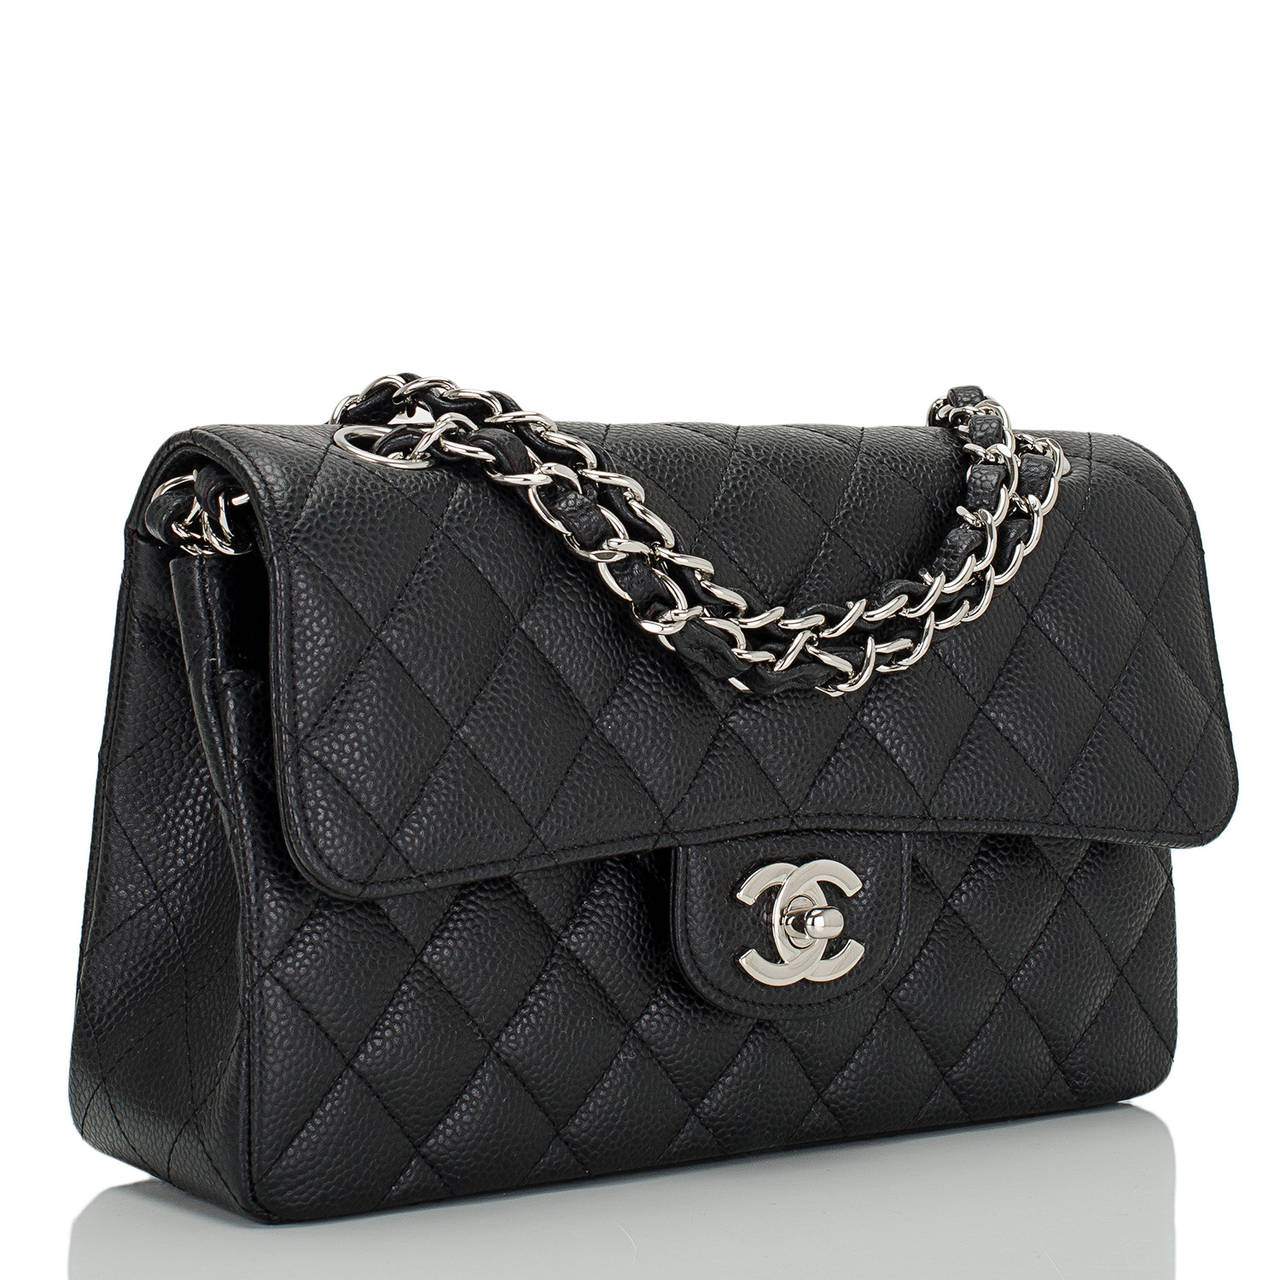 Chanel black Small Classic double flap bag of quilted caviar leather with silver tone hardware.